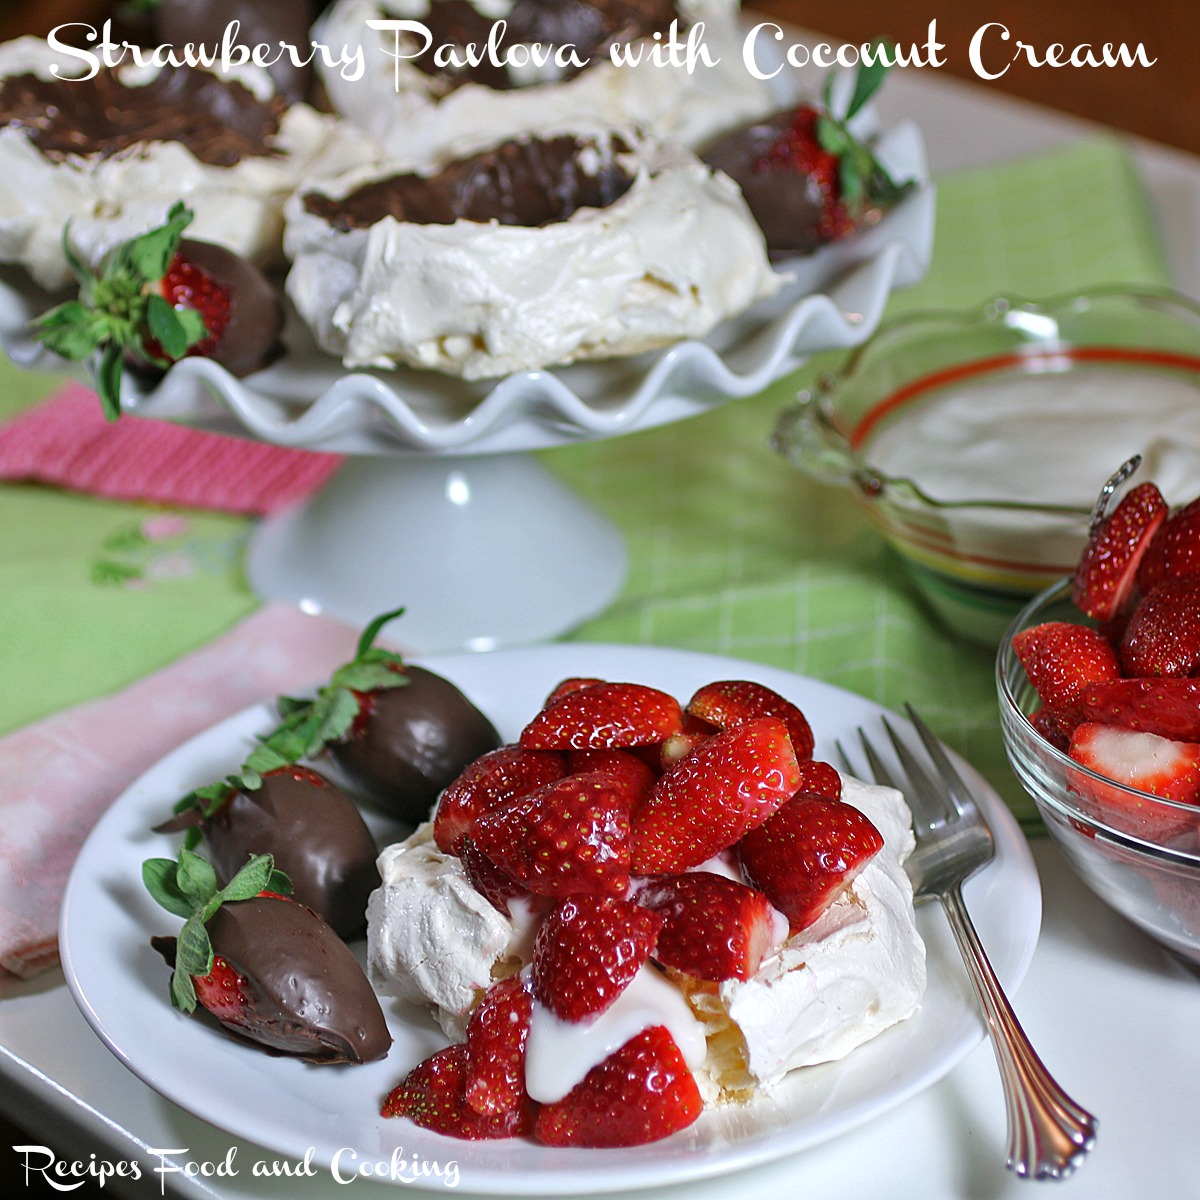 Strawberry Pavlova with Coconut Cream